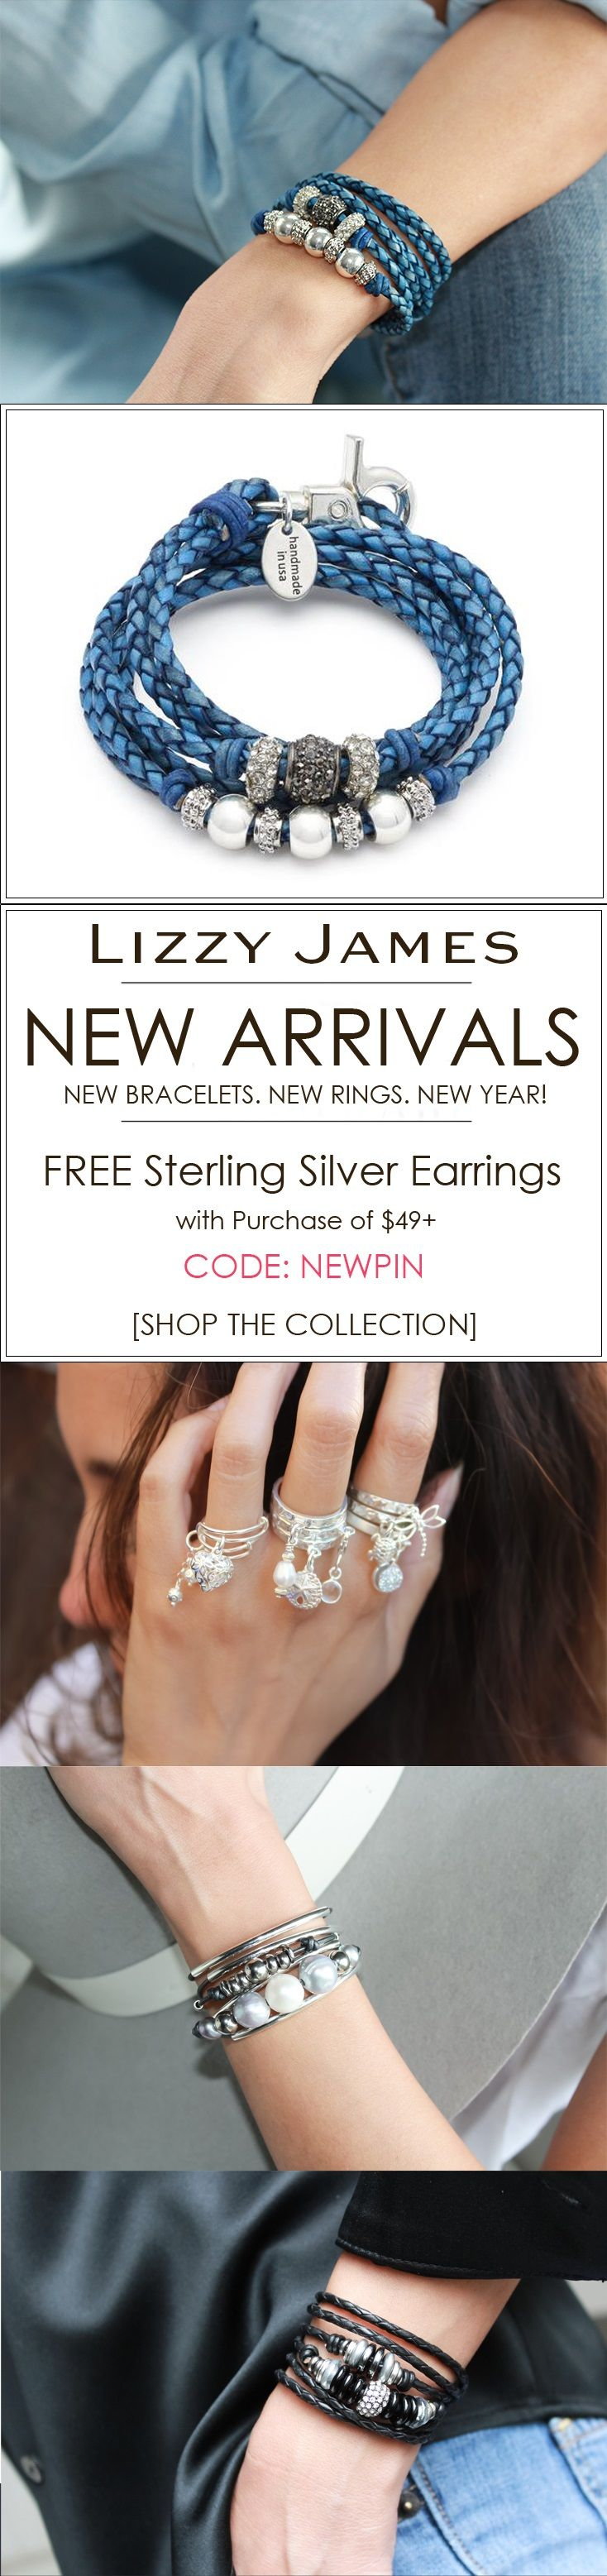 New Bracelets. New Rings. New Year! FREE Sterling Silver Earrings + FREE Shipping for all 1st time buyers with coupon code NEWPIN (min purchase of $49+).  Let Lizzy James Jewelry help you stay in style in the New Year! Featuring braided leather wrap bracelets, necklaces and sterling silver rings. Our designs fit all wrist sizes from petite to plus size.  Proud to be made in the USA!  #lizzyjames